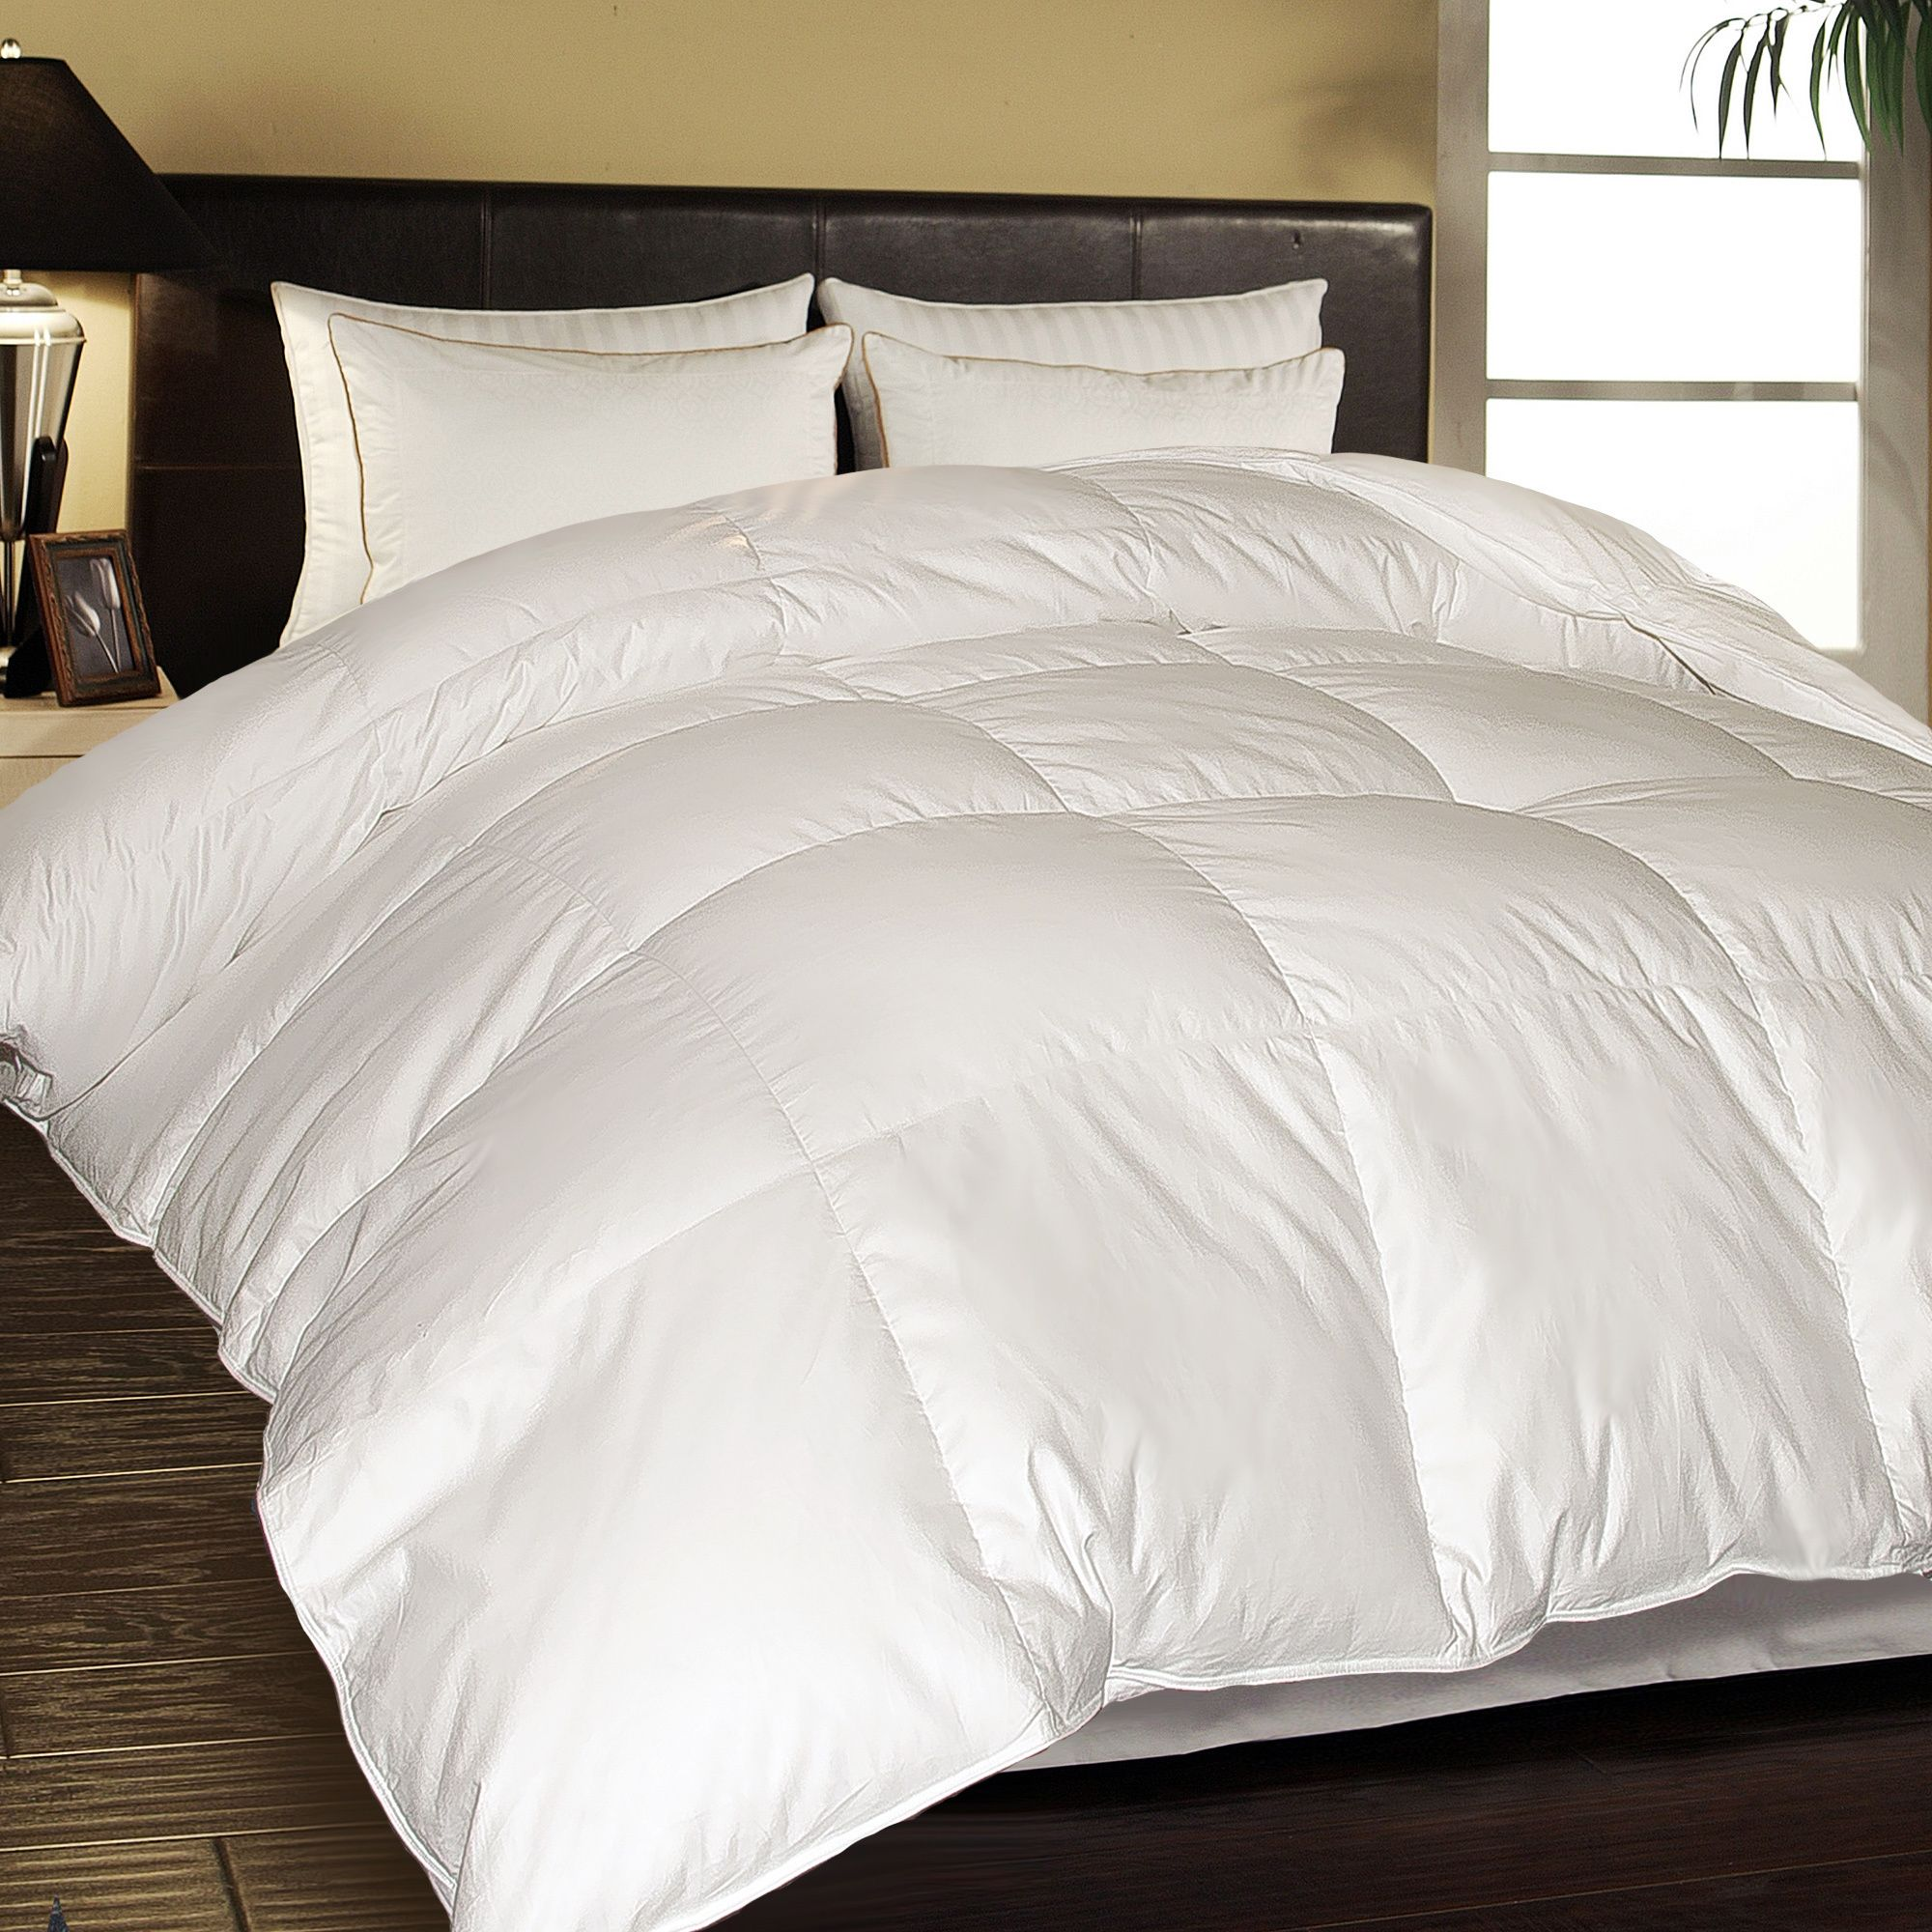 lightweight hungarian white product comforter bedding down free shipping james today home st overstock bath goose